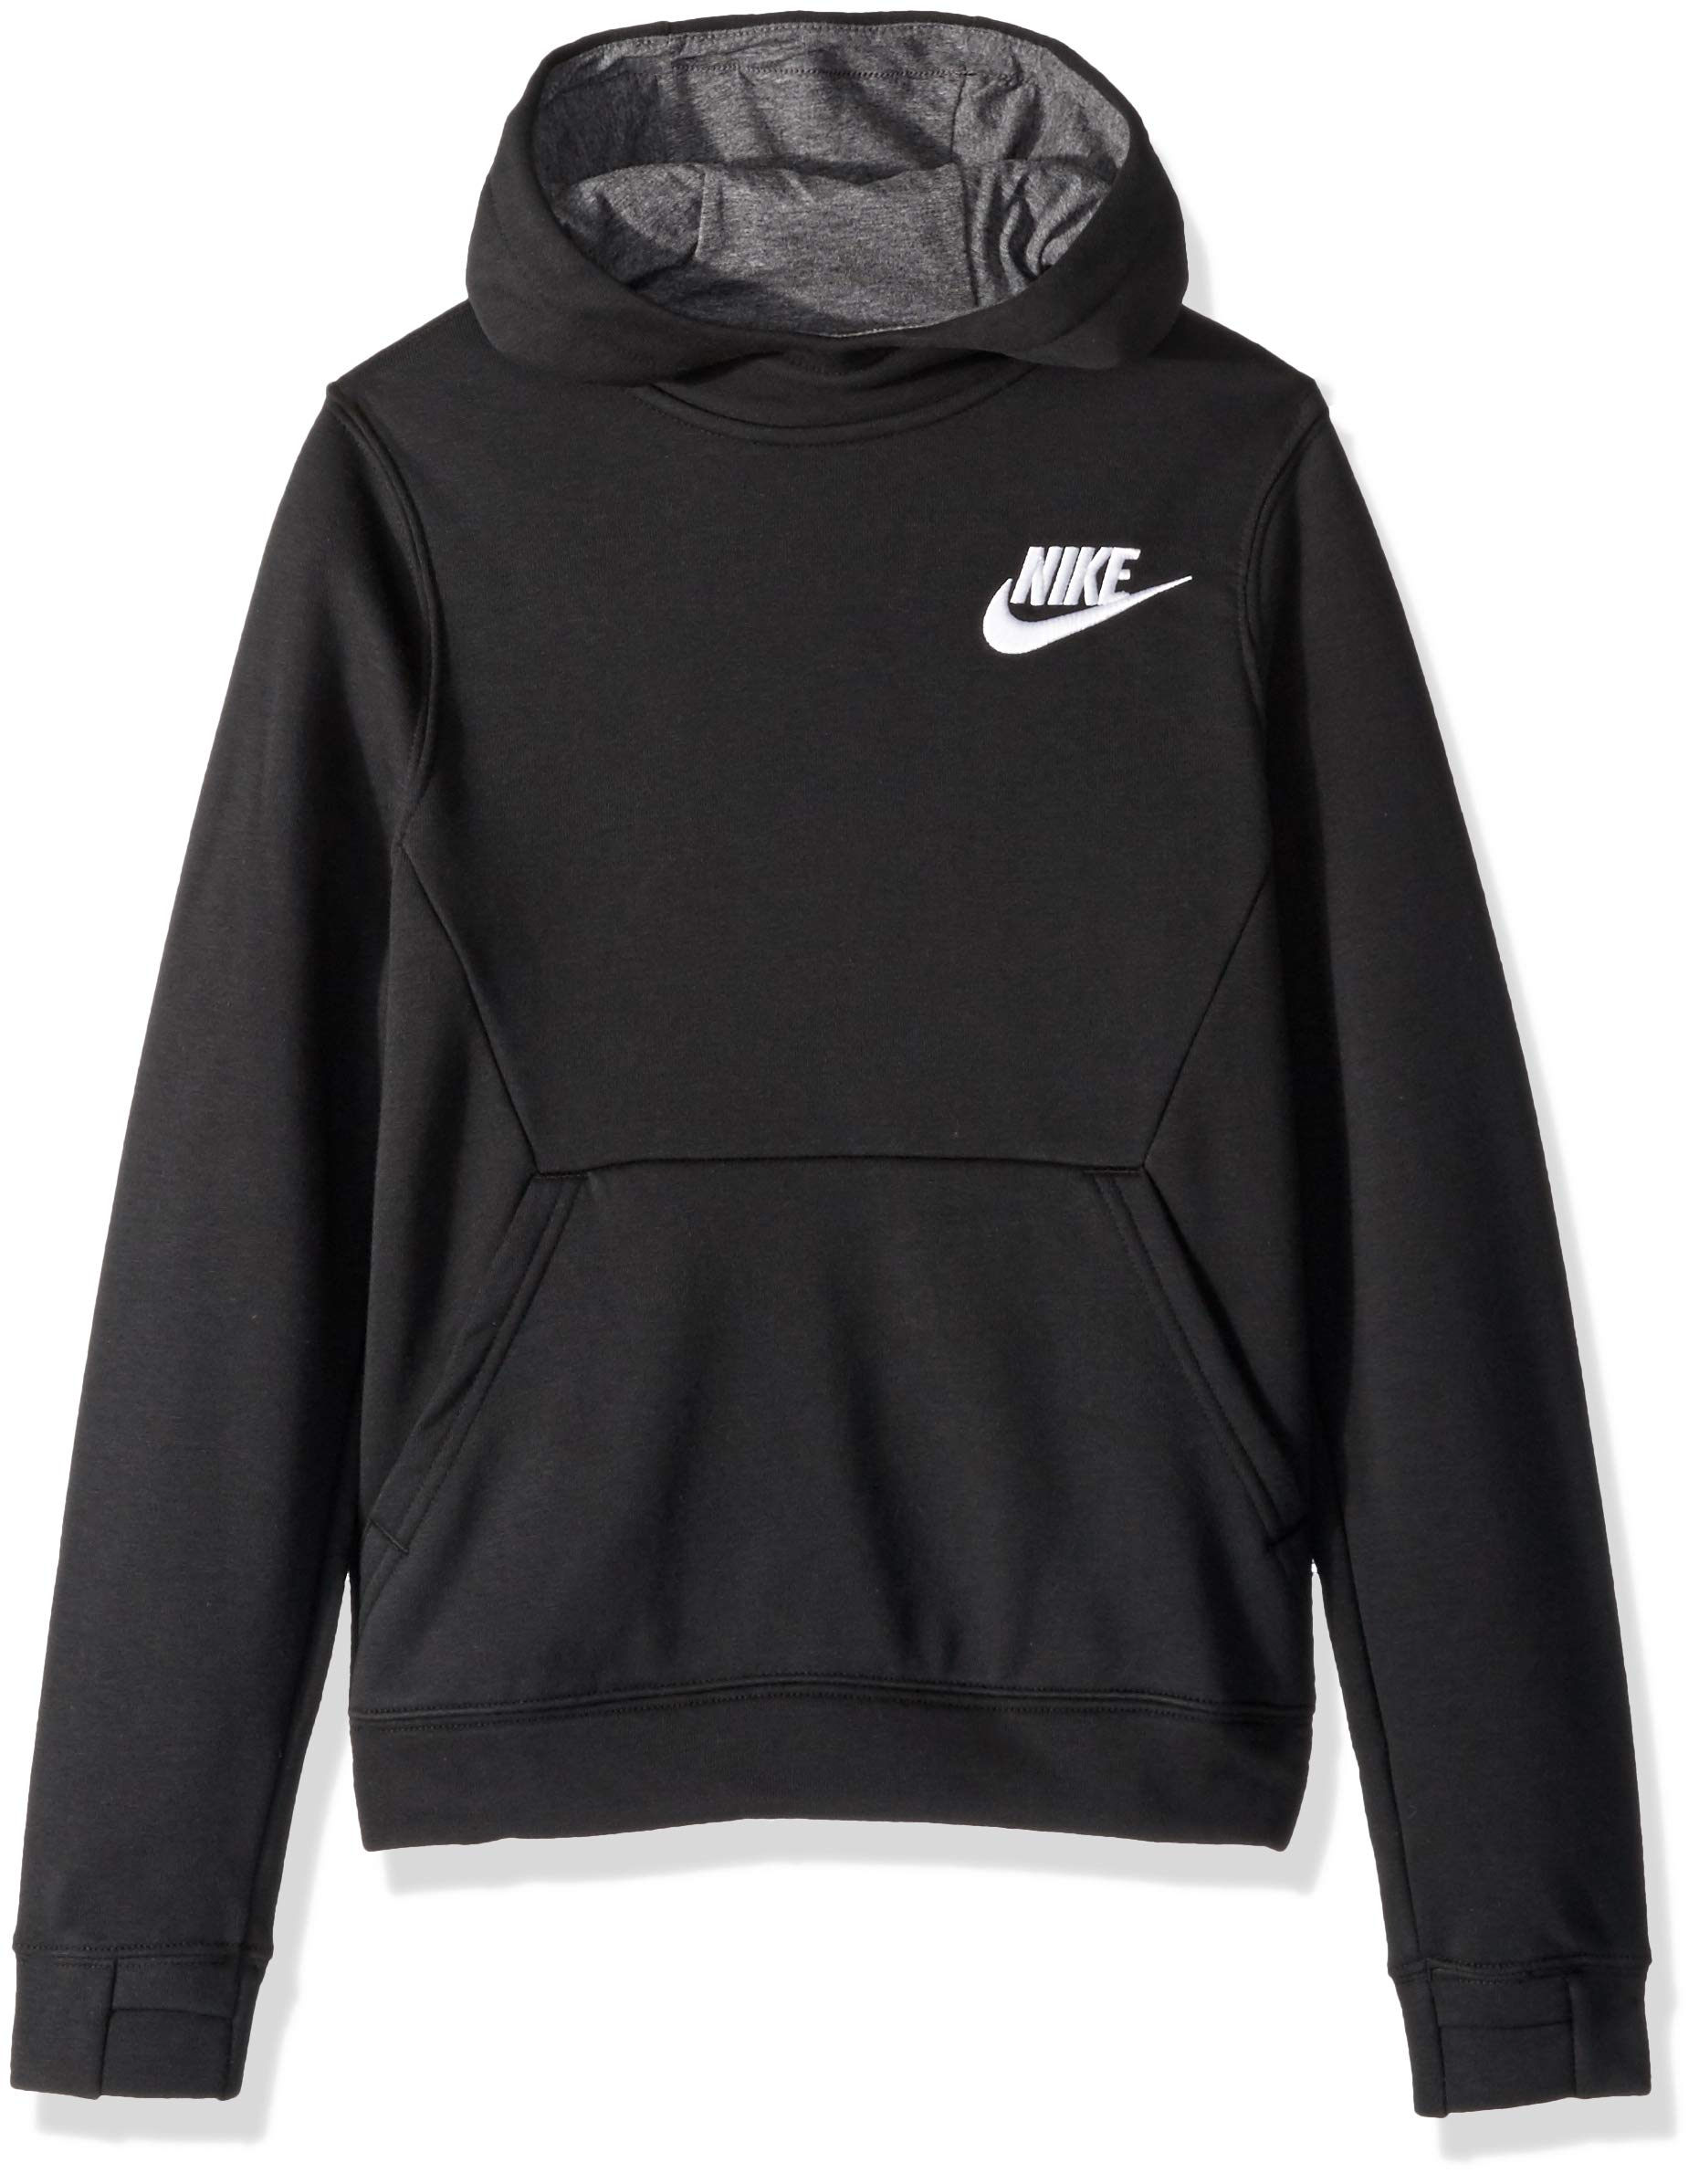 NIKE Sportswear Boys' Club Pullover Hoodie, Black/Charcoal Heather/White, Large